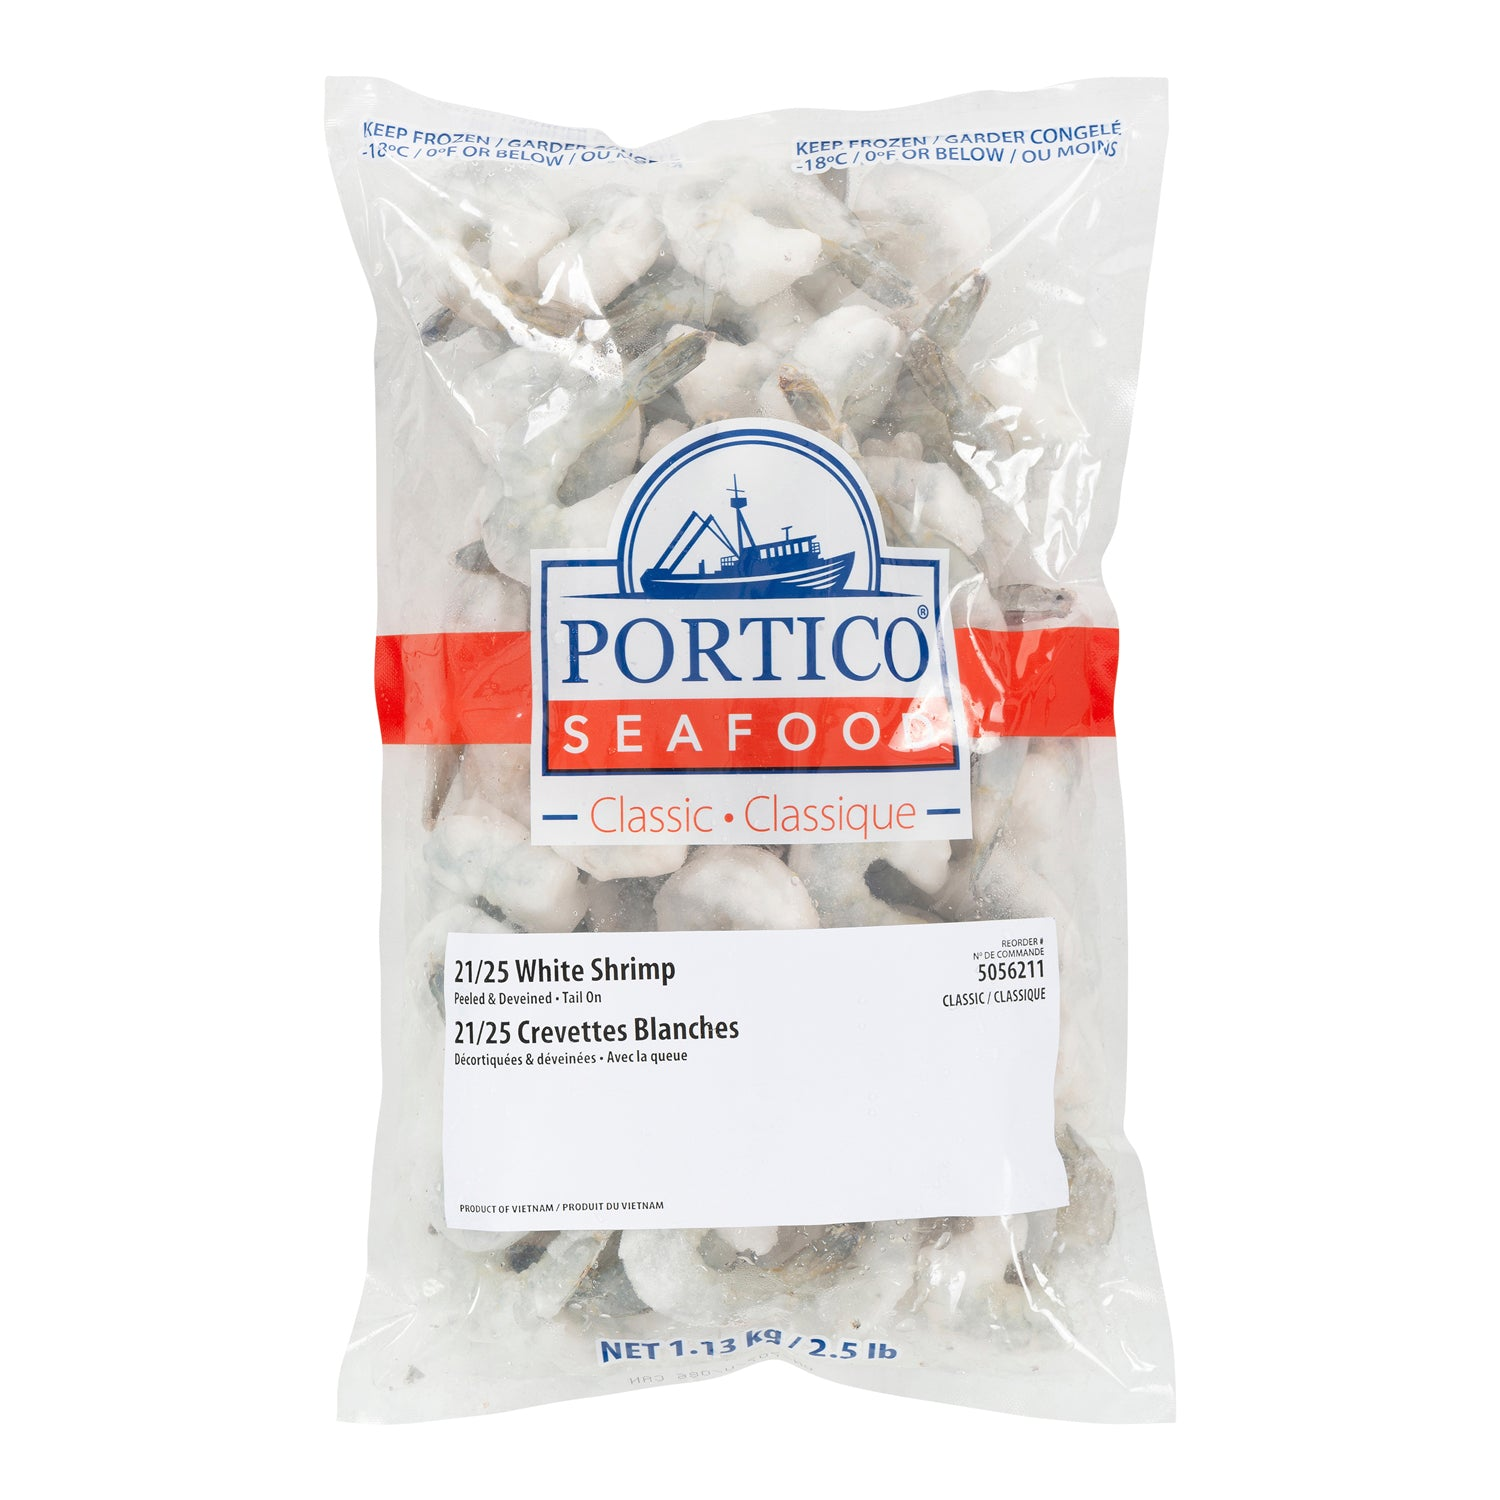 Sysco Portico Frozen Raw Jumbo White Shrimp Peeled & Deveined With Tail On (21-25 shrimp per lb) 2.5 lb - 2 Pack [$10.70/lb]